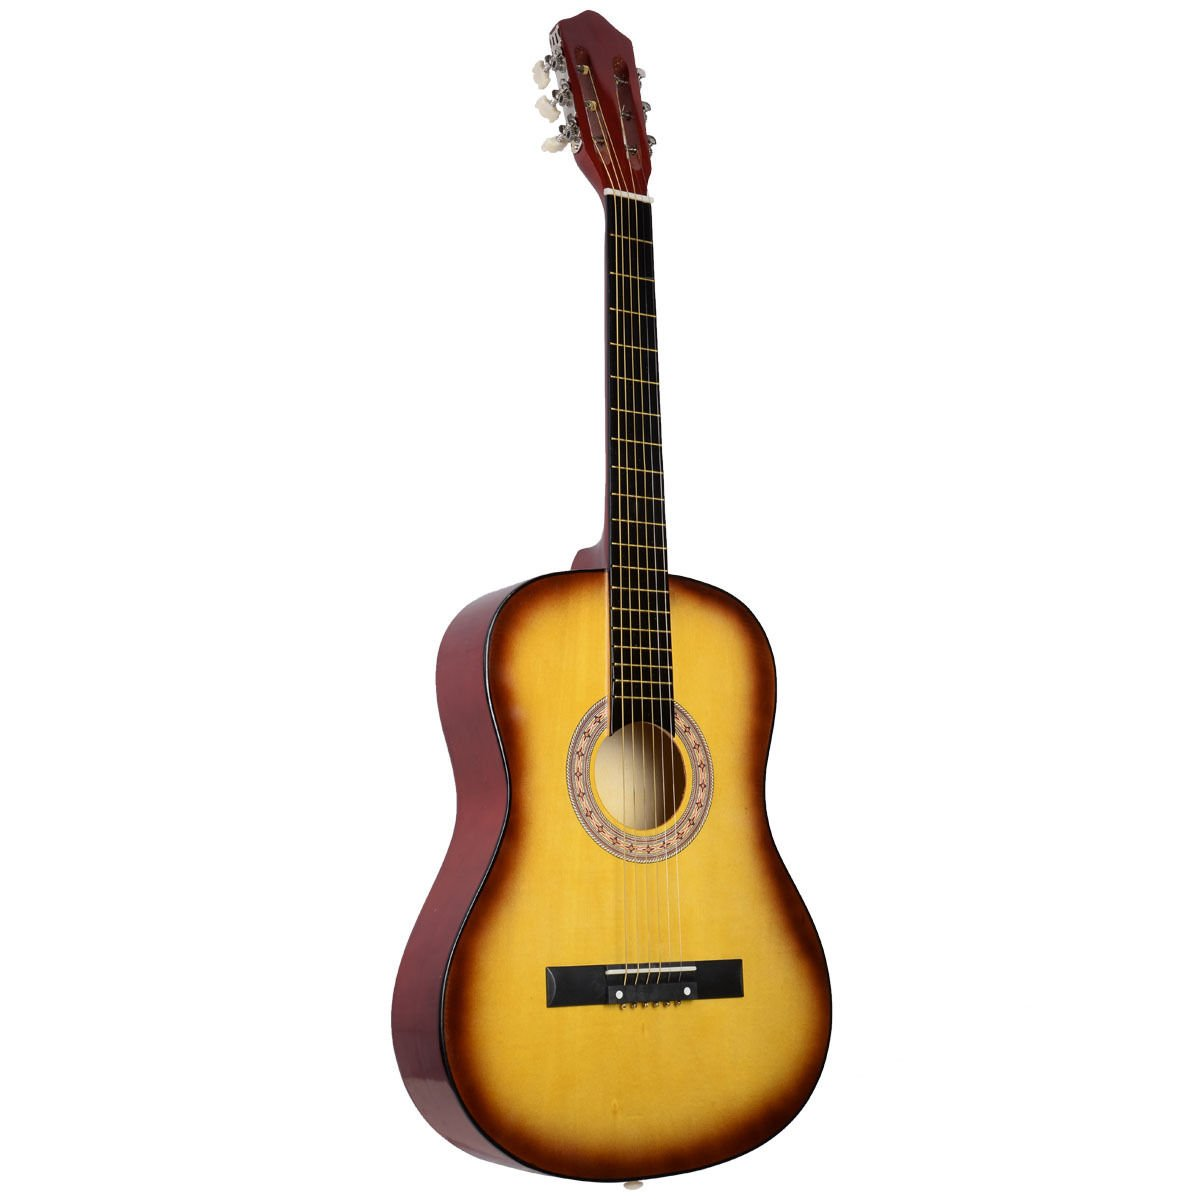 Super buy Acoustic Guitar W/Guitar Case Strap Tuner Pick For New Beginners Yellow Sup-9750